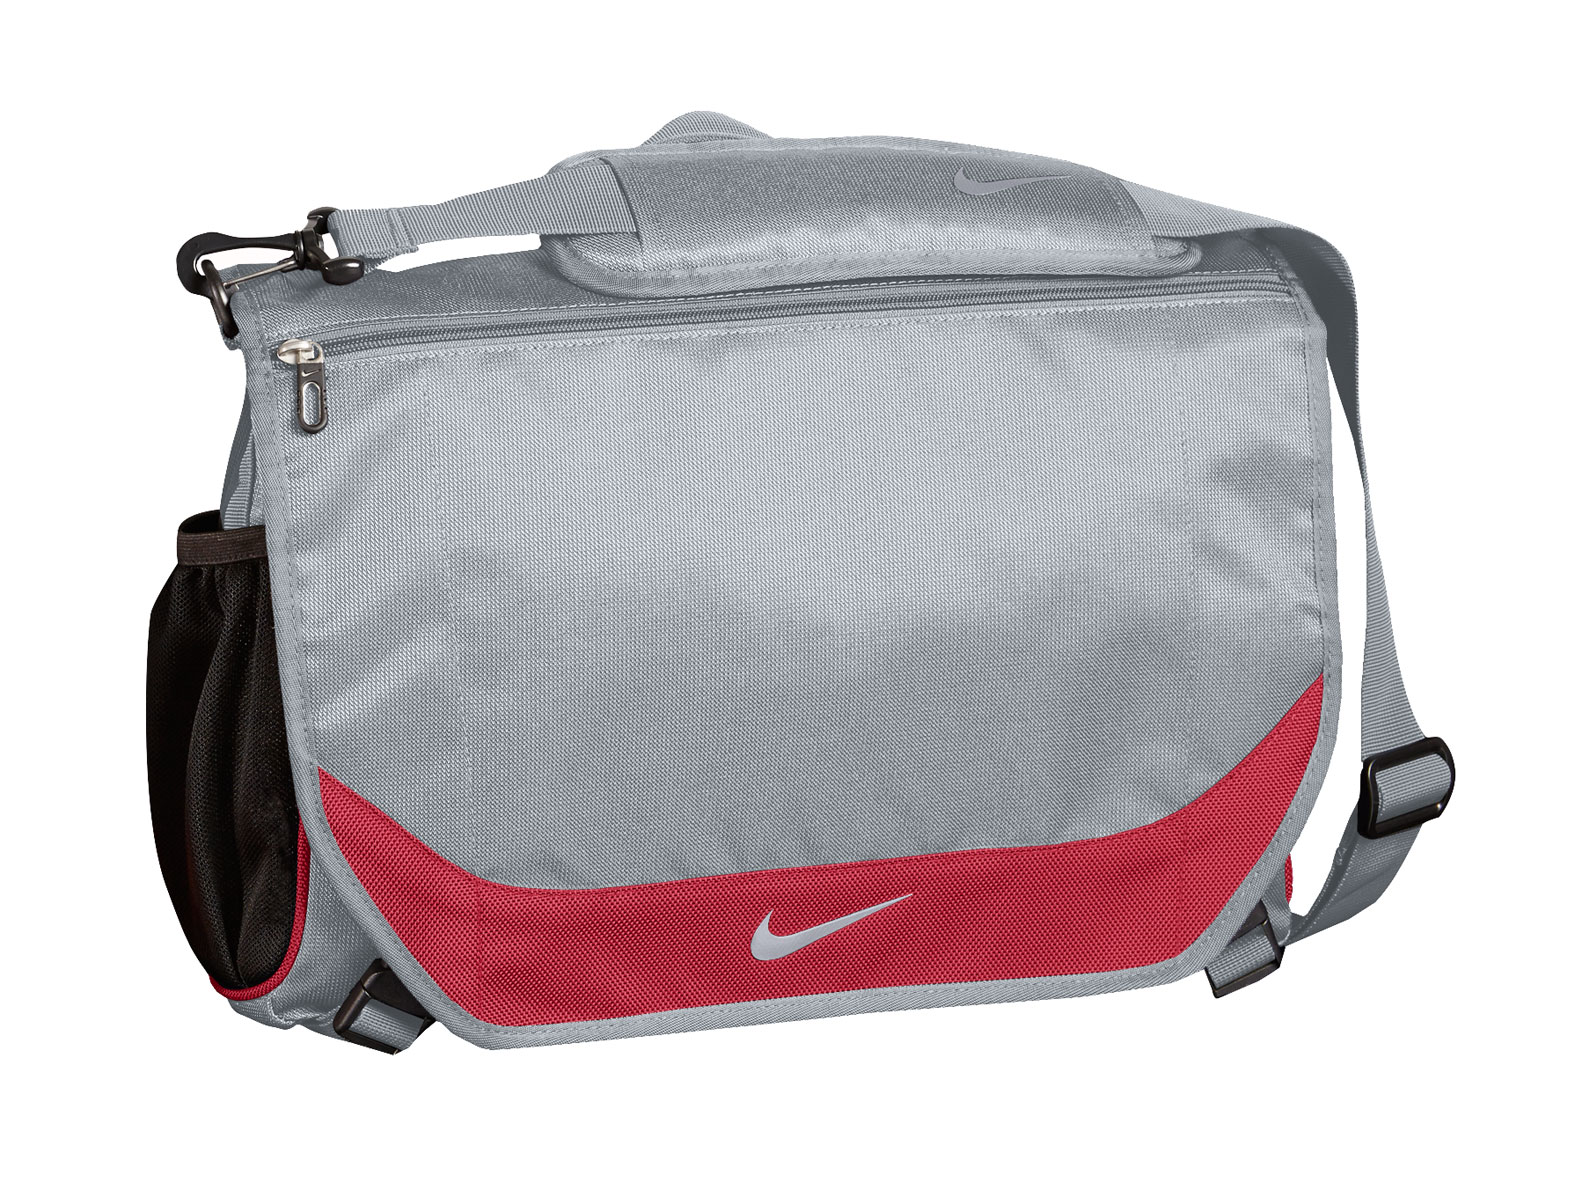 Nike Golf Performance Messenger